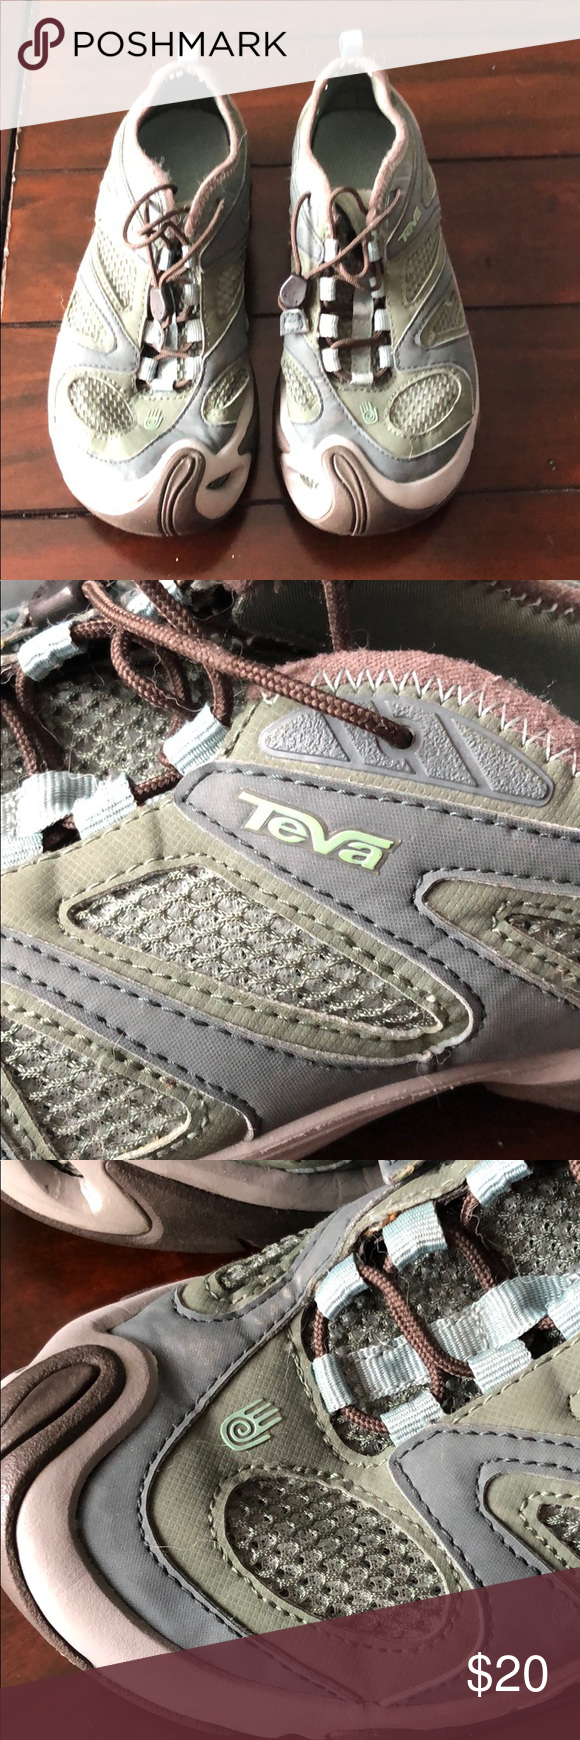 TEVA Spider Rubber Water Shoes Pre